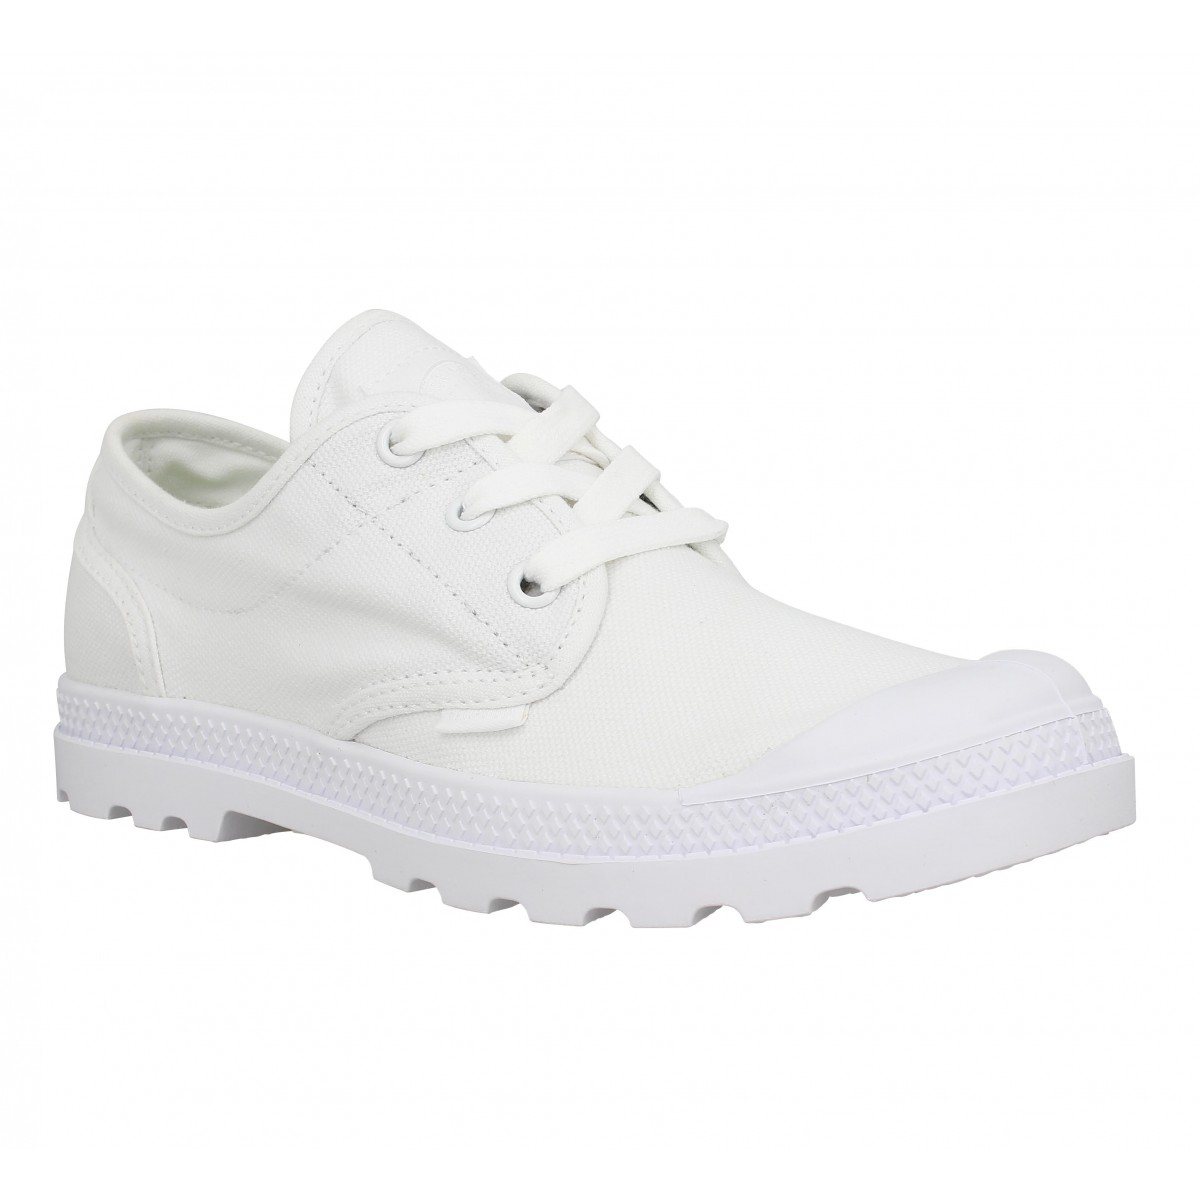 Baskets PALLADIUM Oxford Lite toile Femme Blanc Vapor